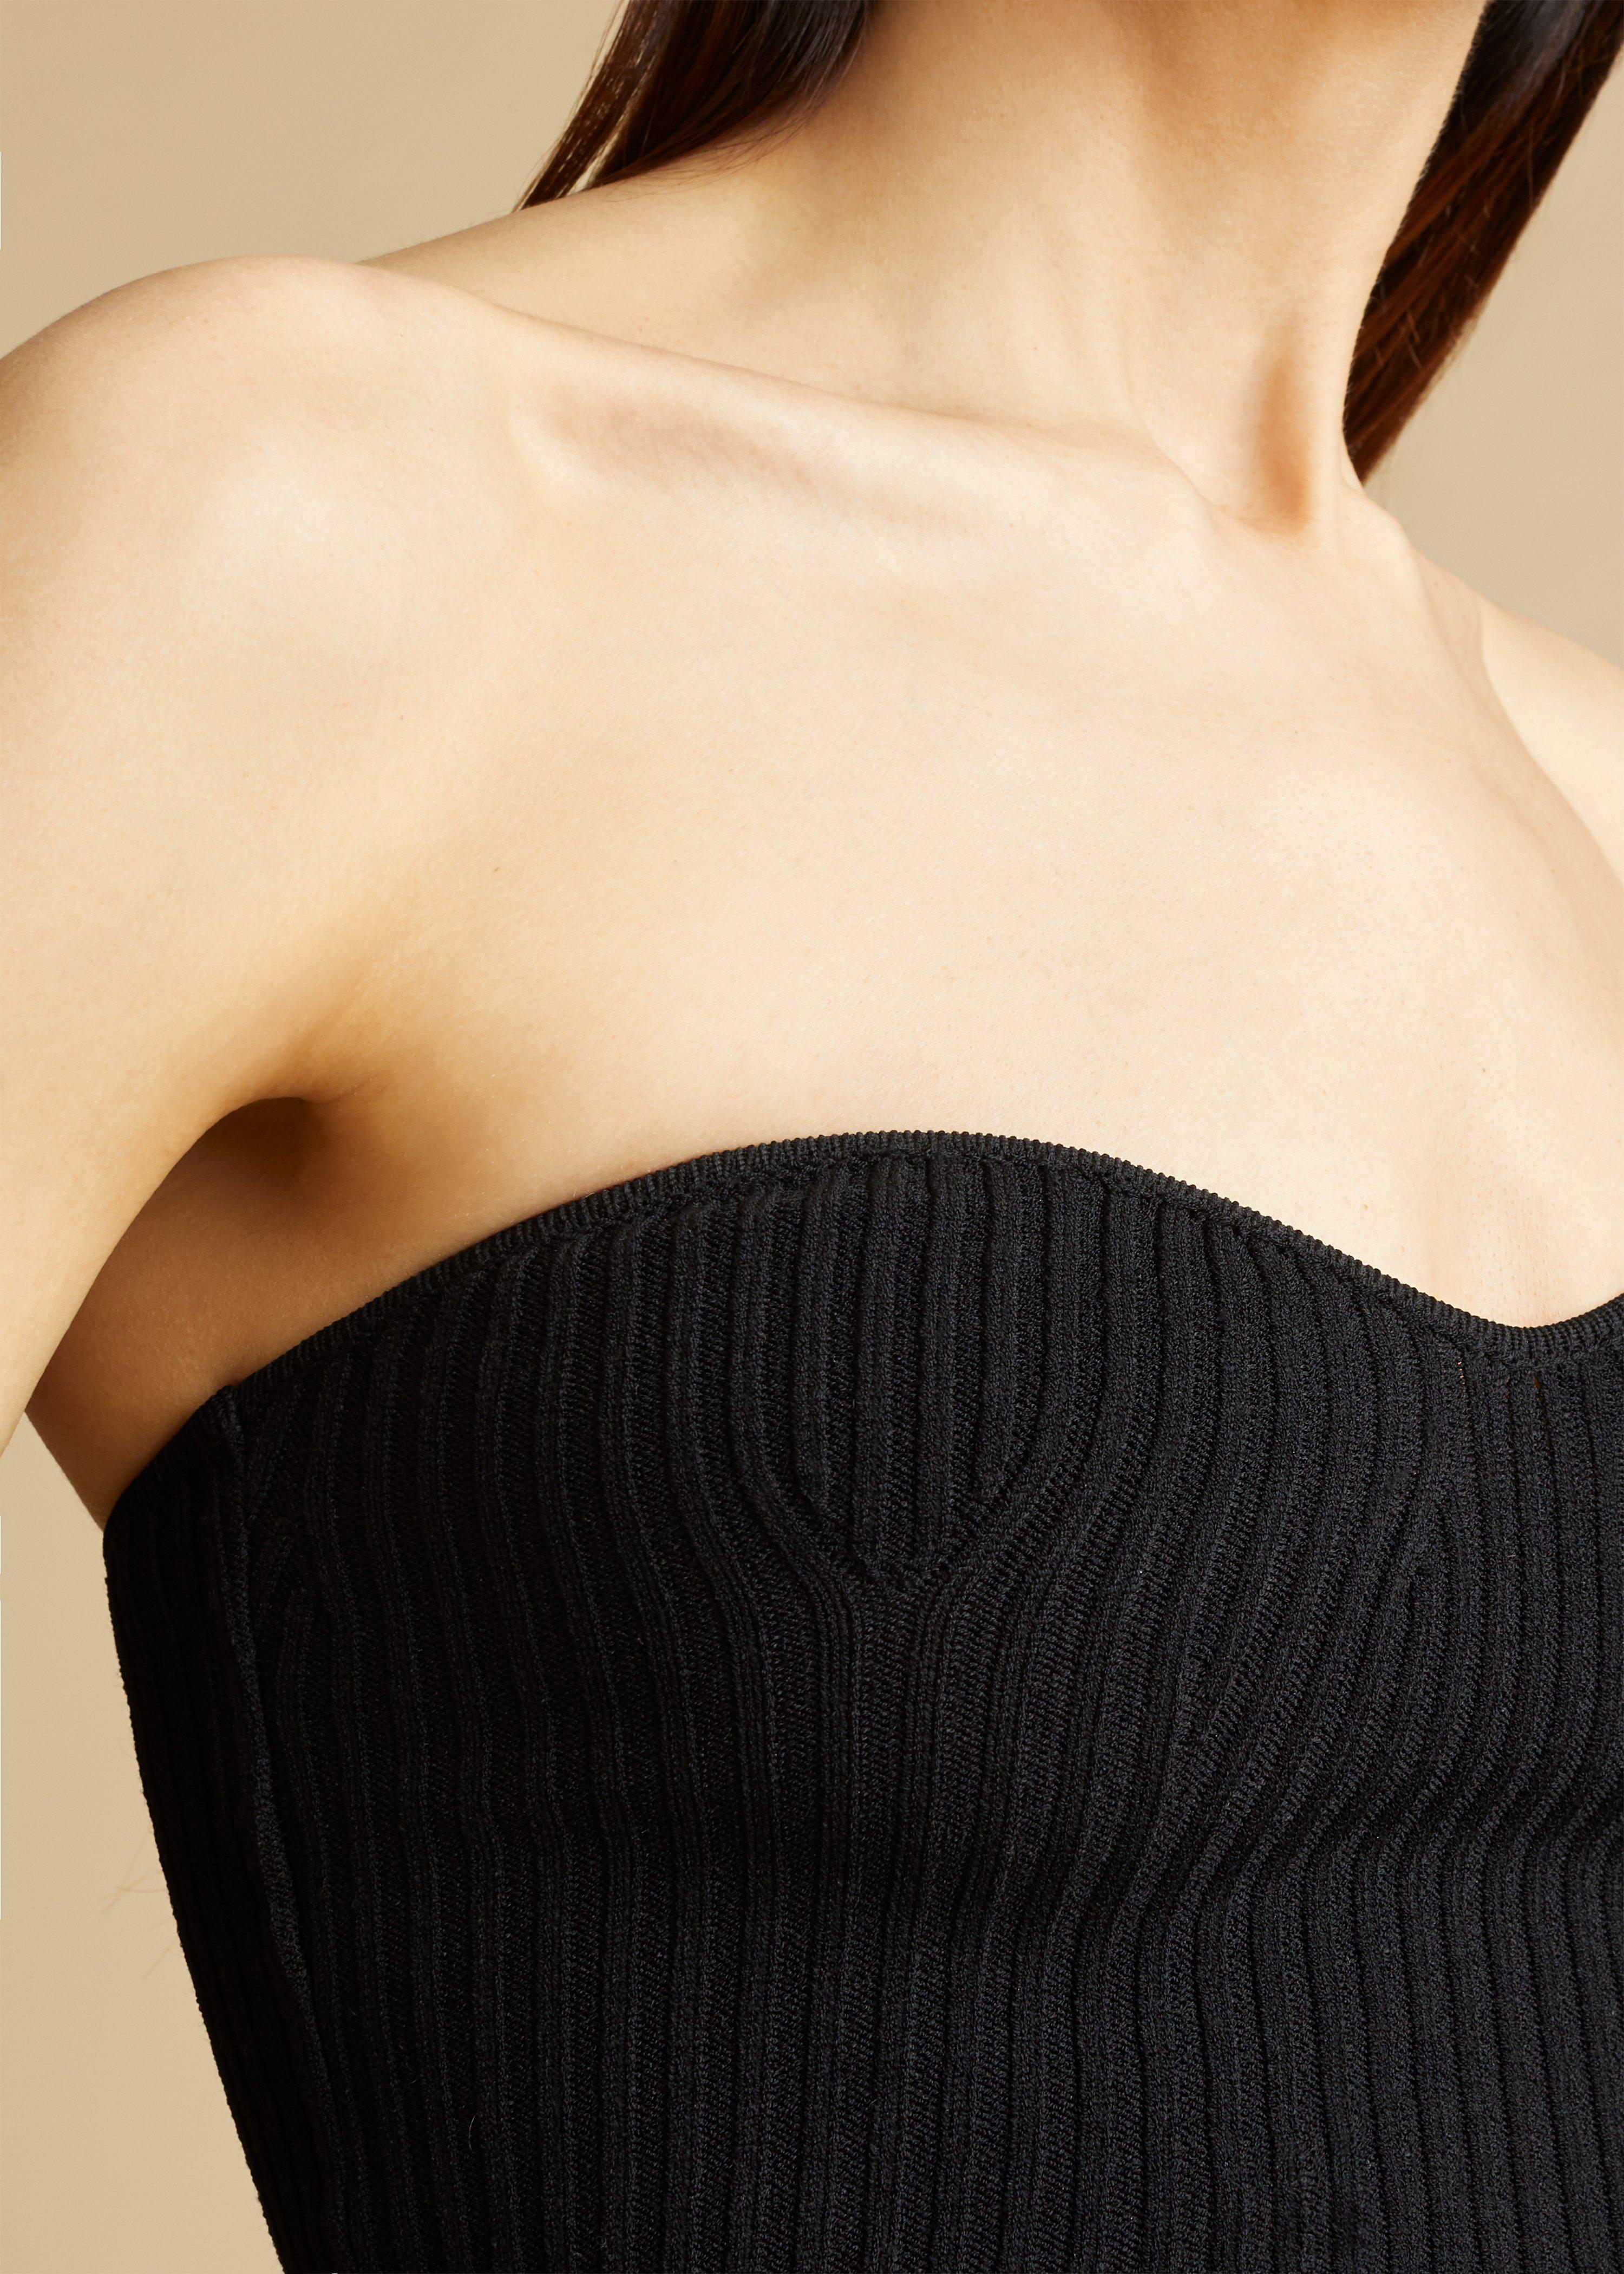 The Lucie Top in Black 6